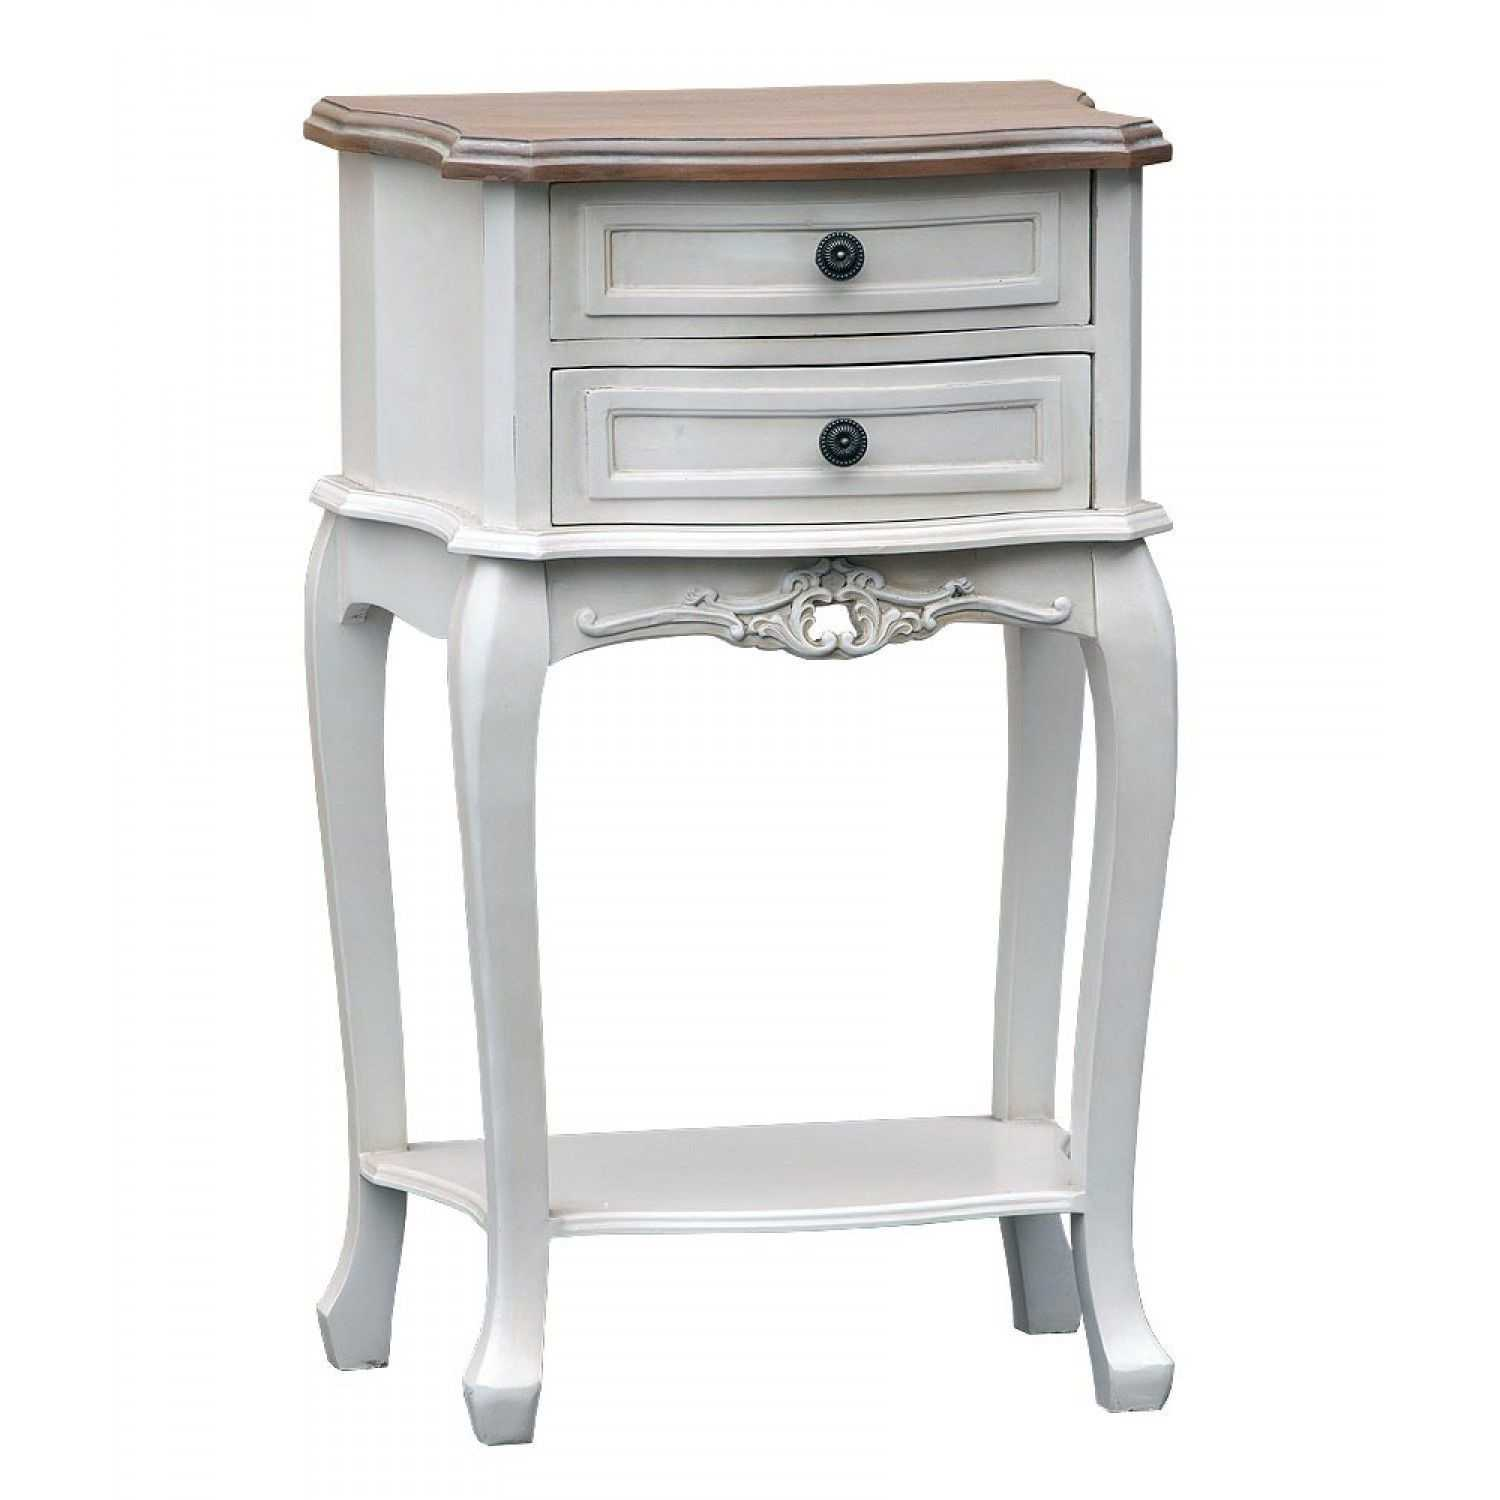 White Bedside Drawers Antique White Bedside Table With 2 Drawers Natural Wooden Top